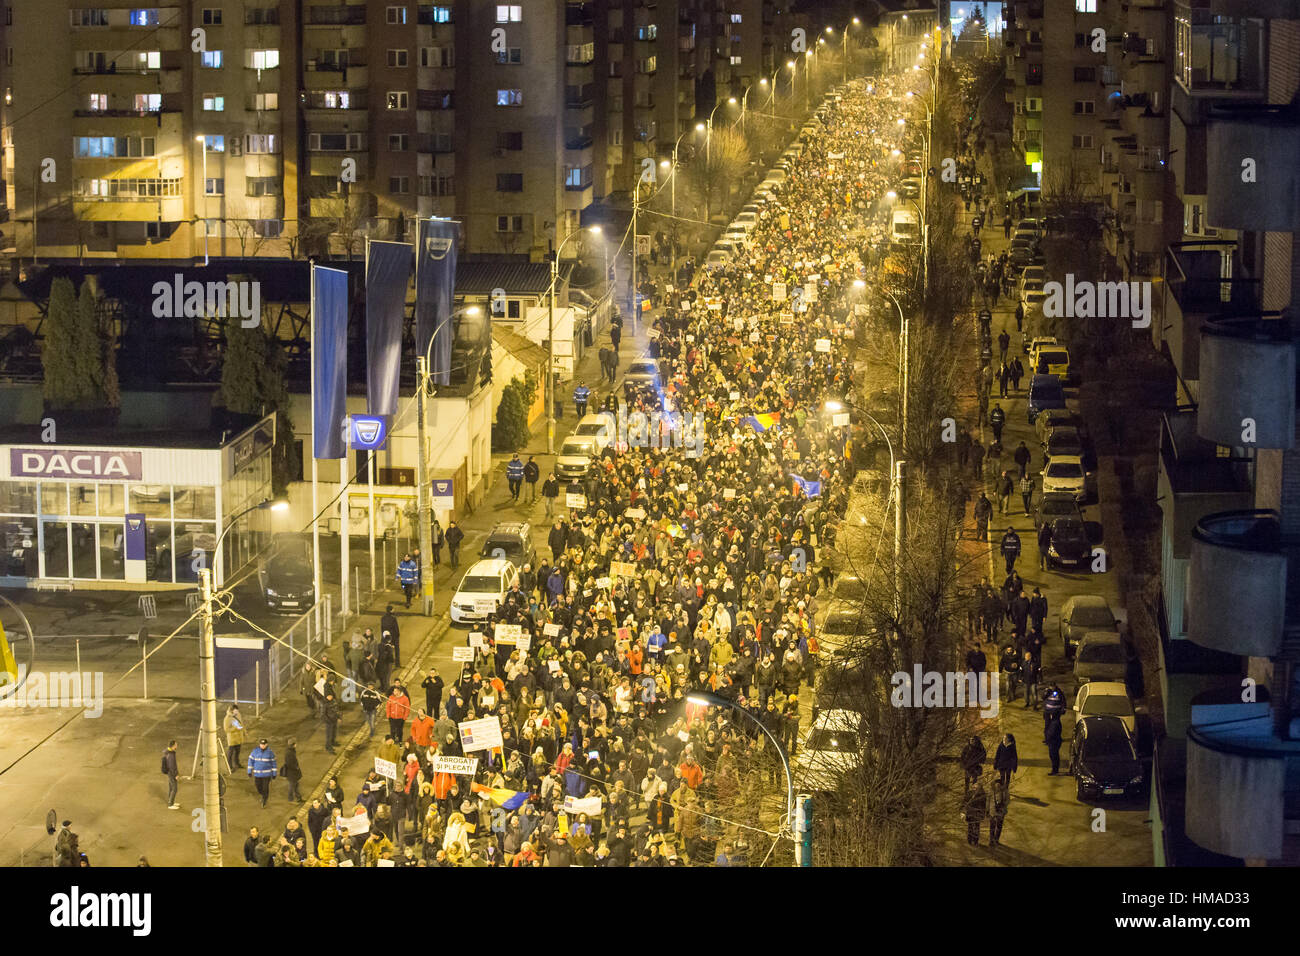 Cluj-Napoca, Romania. 2nd February 2017. Tens of thousands Romanians marched the streets of Cluj-Napoca to protest - Stock Image